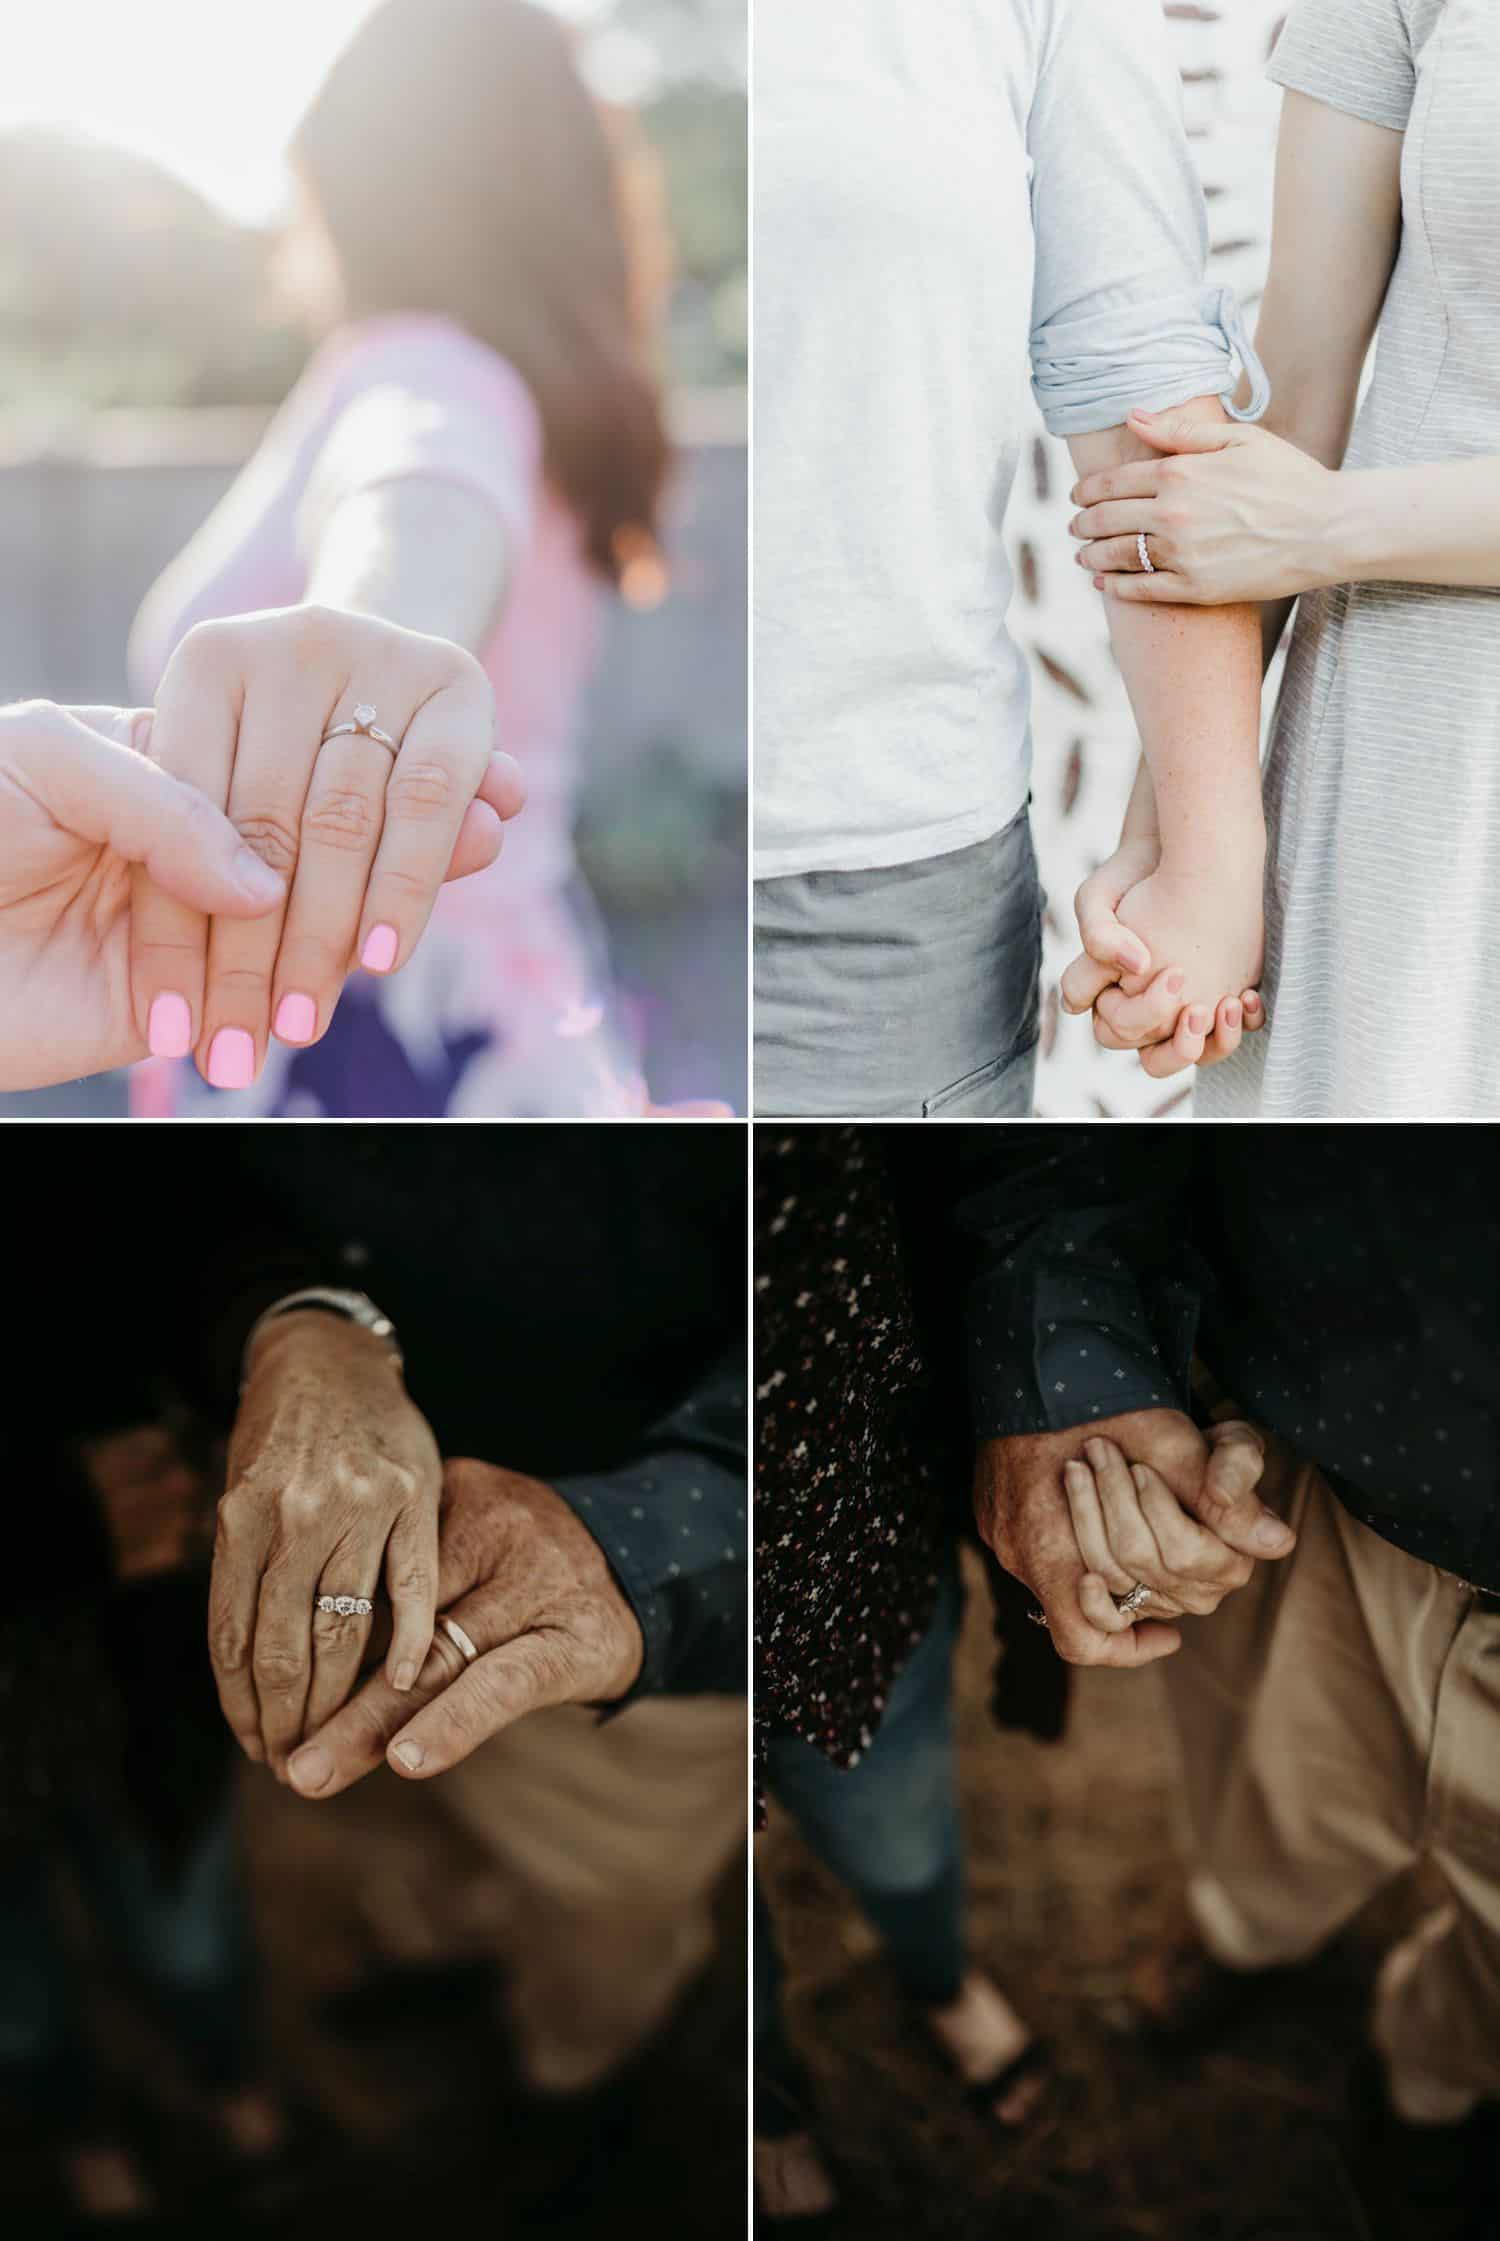 Wedding and engagement rings are creatively photographed on three different couples